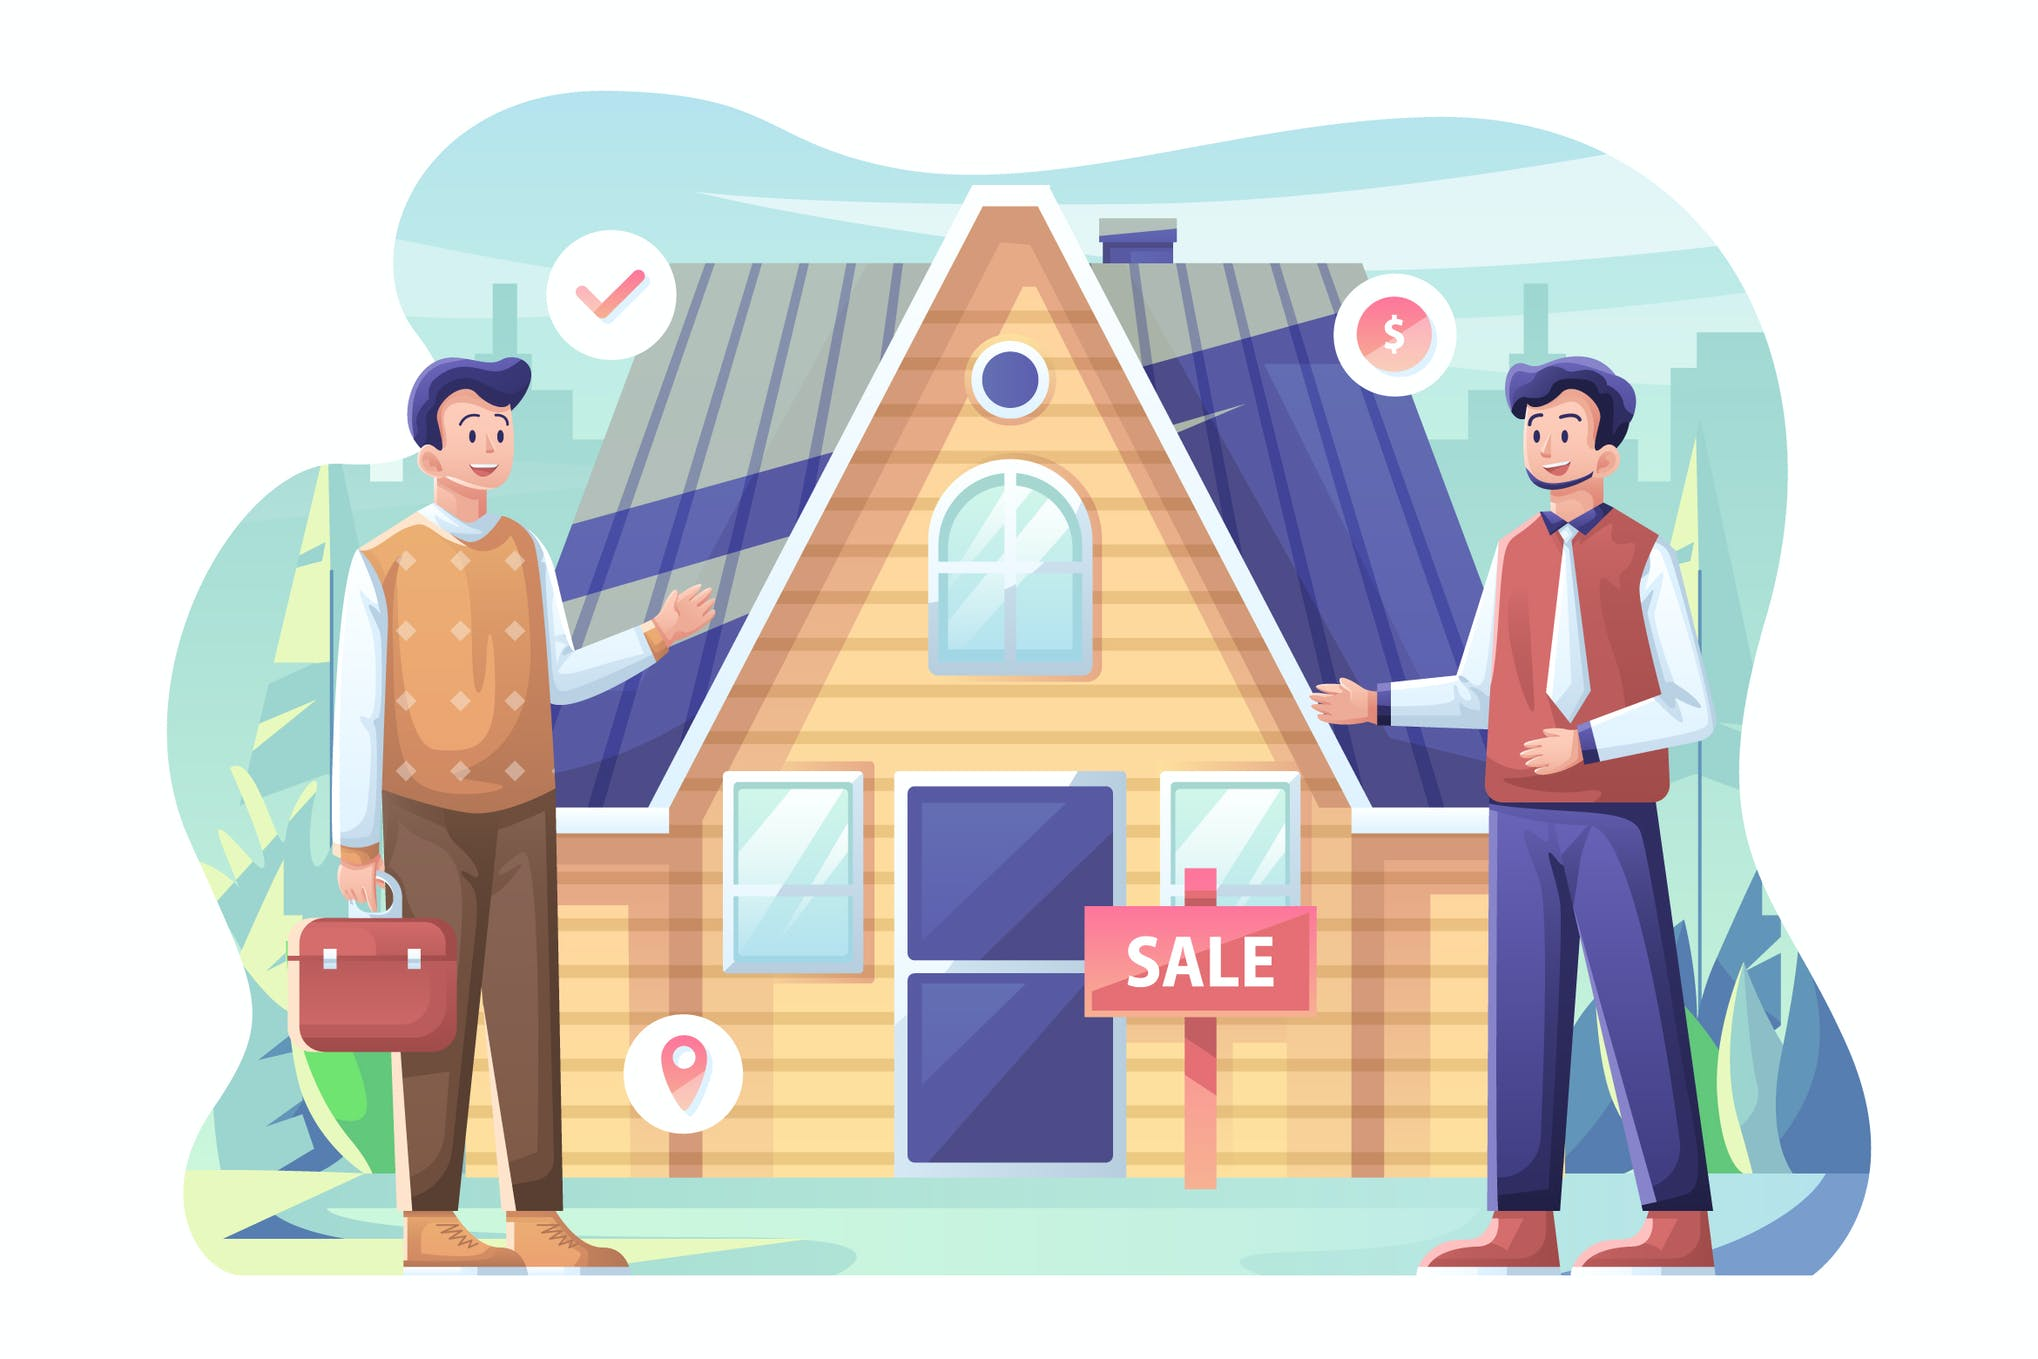 Selling Property in Bad Condition